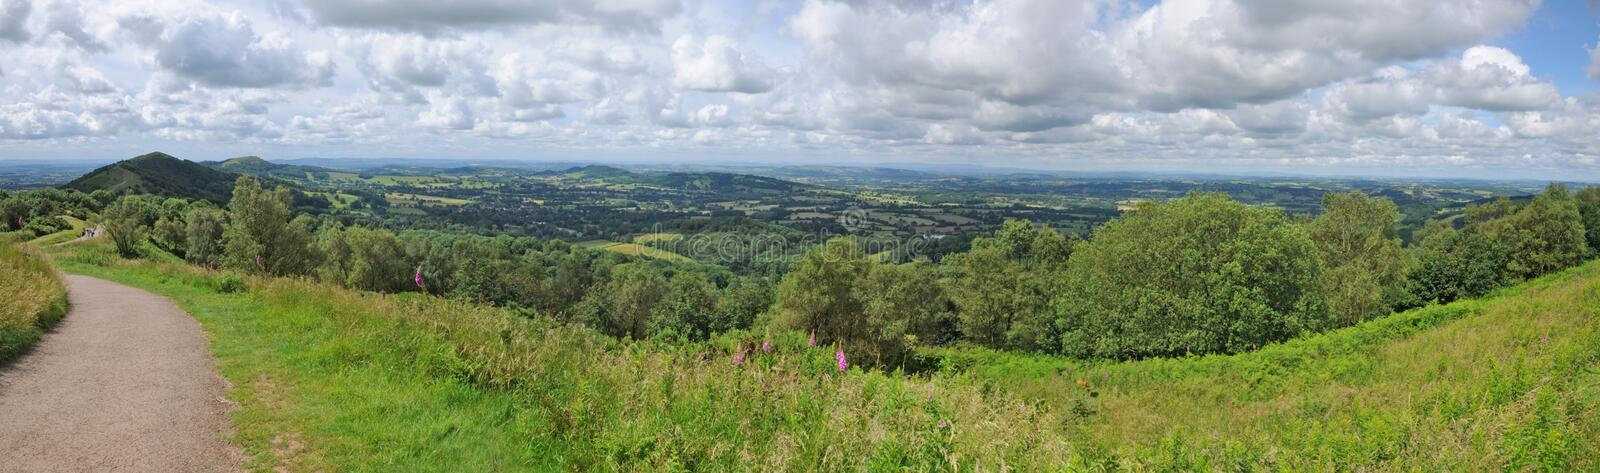 Panorama of the english countryside royalty free stock image